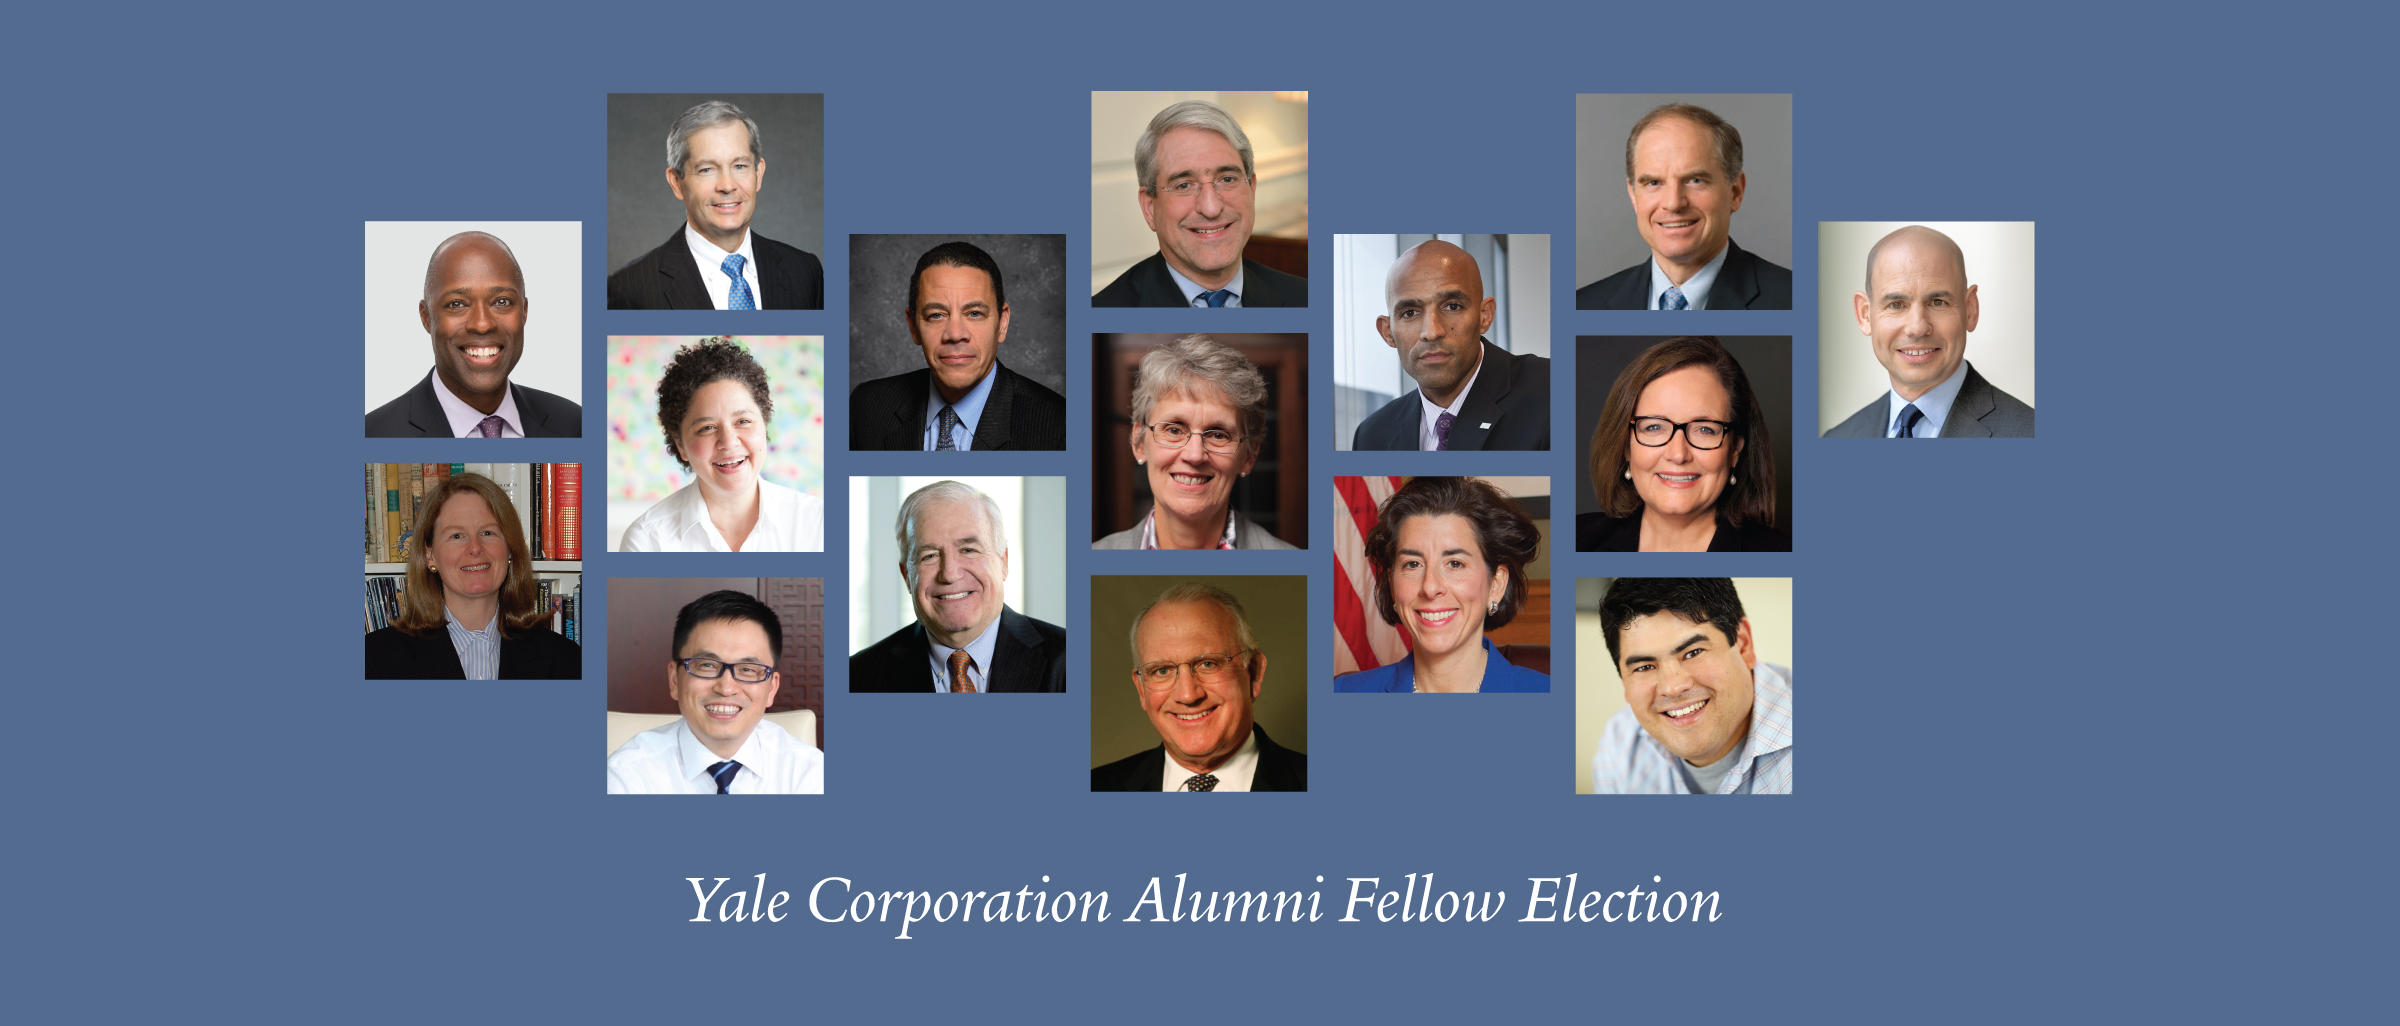 Yale Corporation Alumni Fellow Election